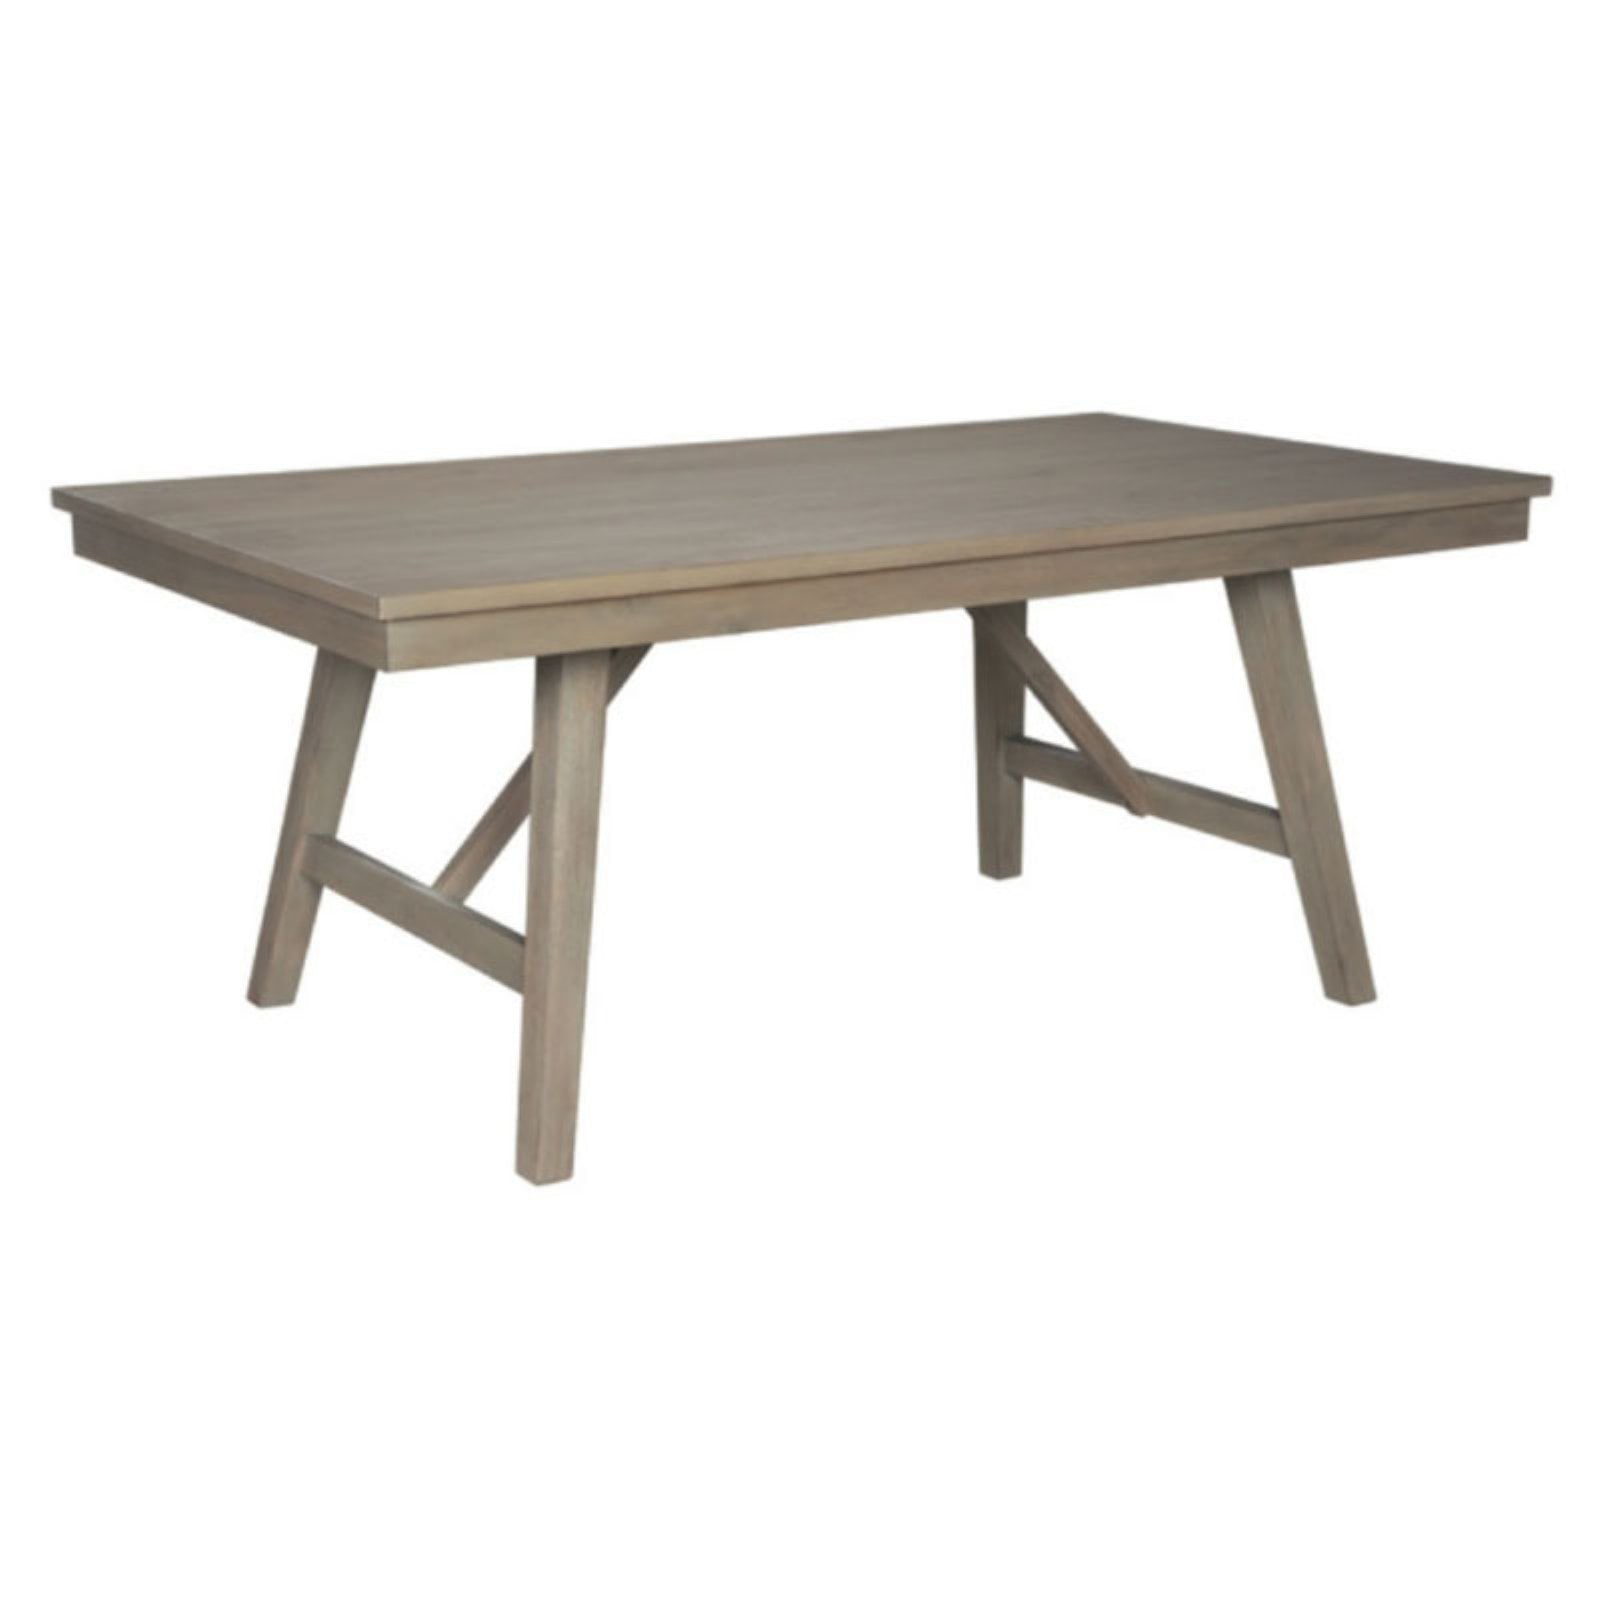 Signature Design By Ashley Sommerford, Sommerford Dining Room Table